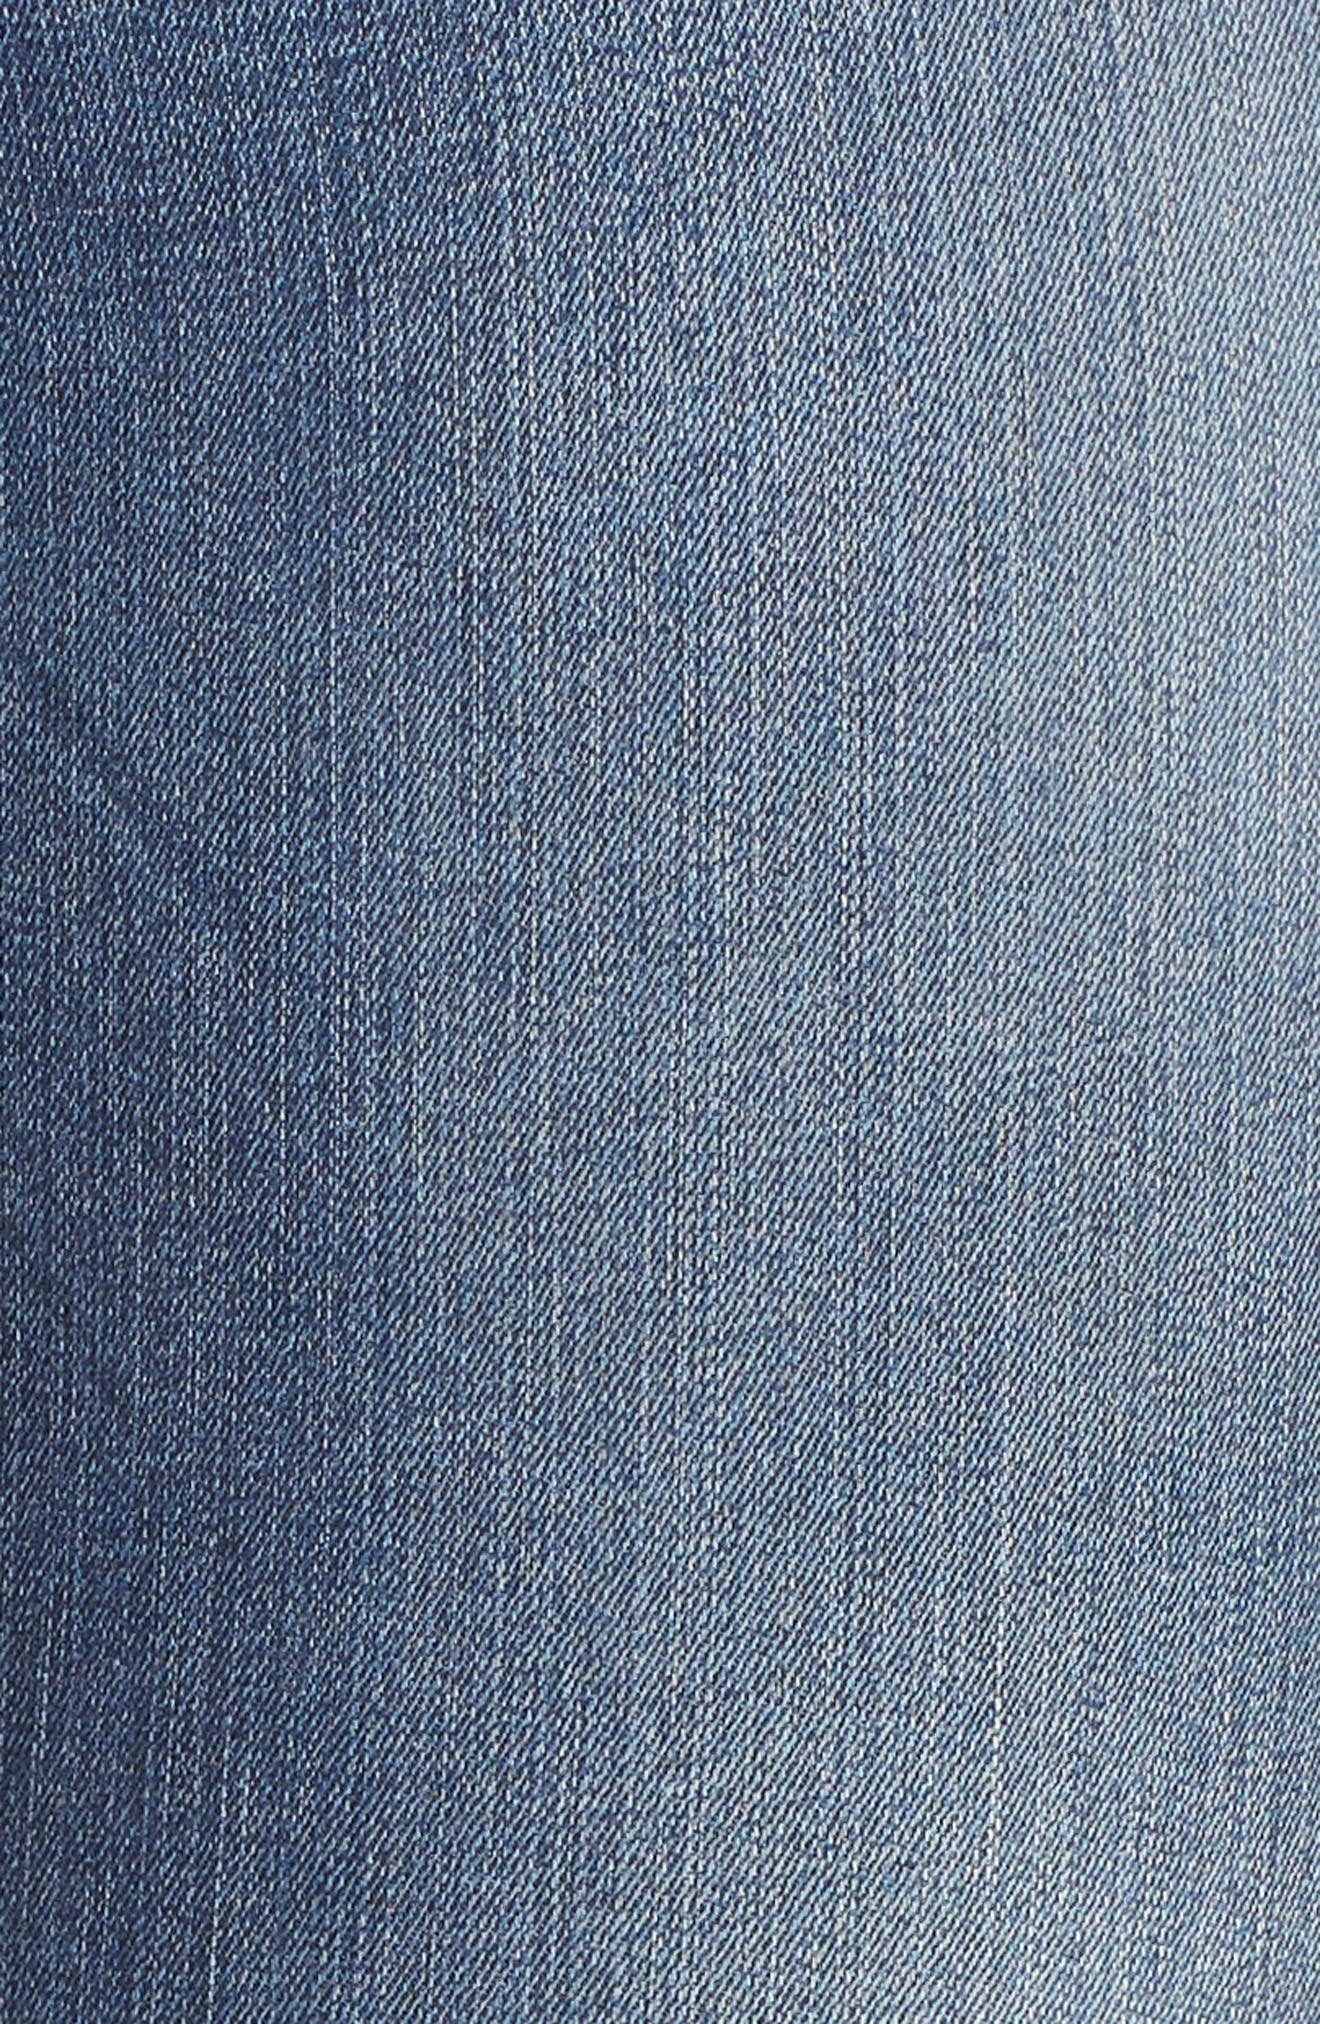 Embroidered Skinny Jeans,                             Alternate thumbnail 4, color,                             Input